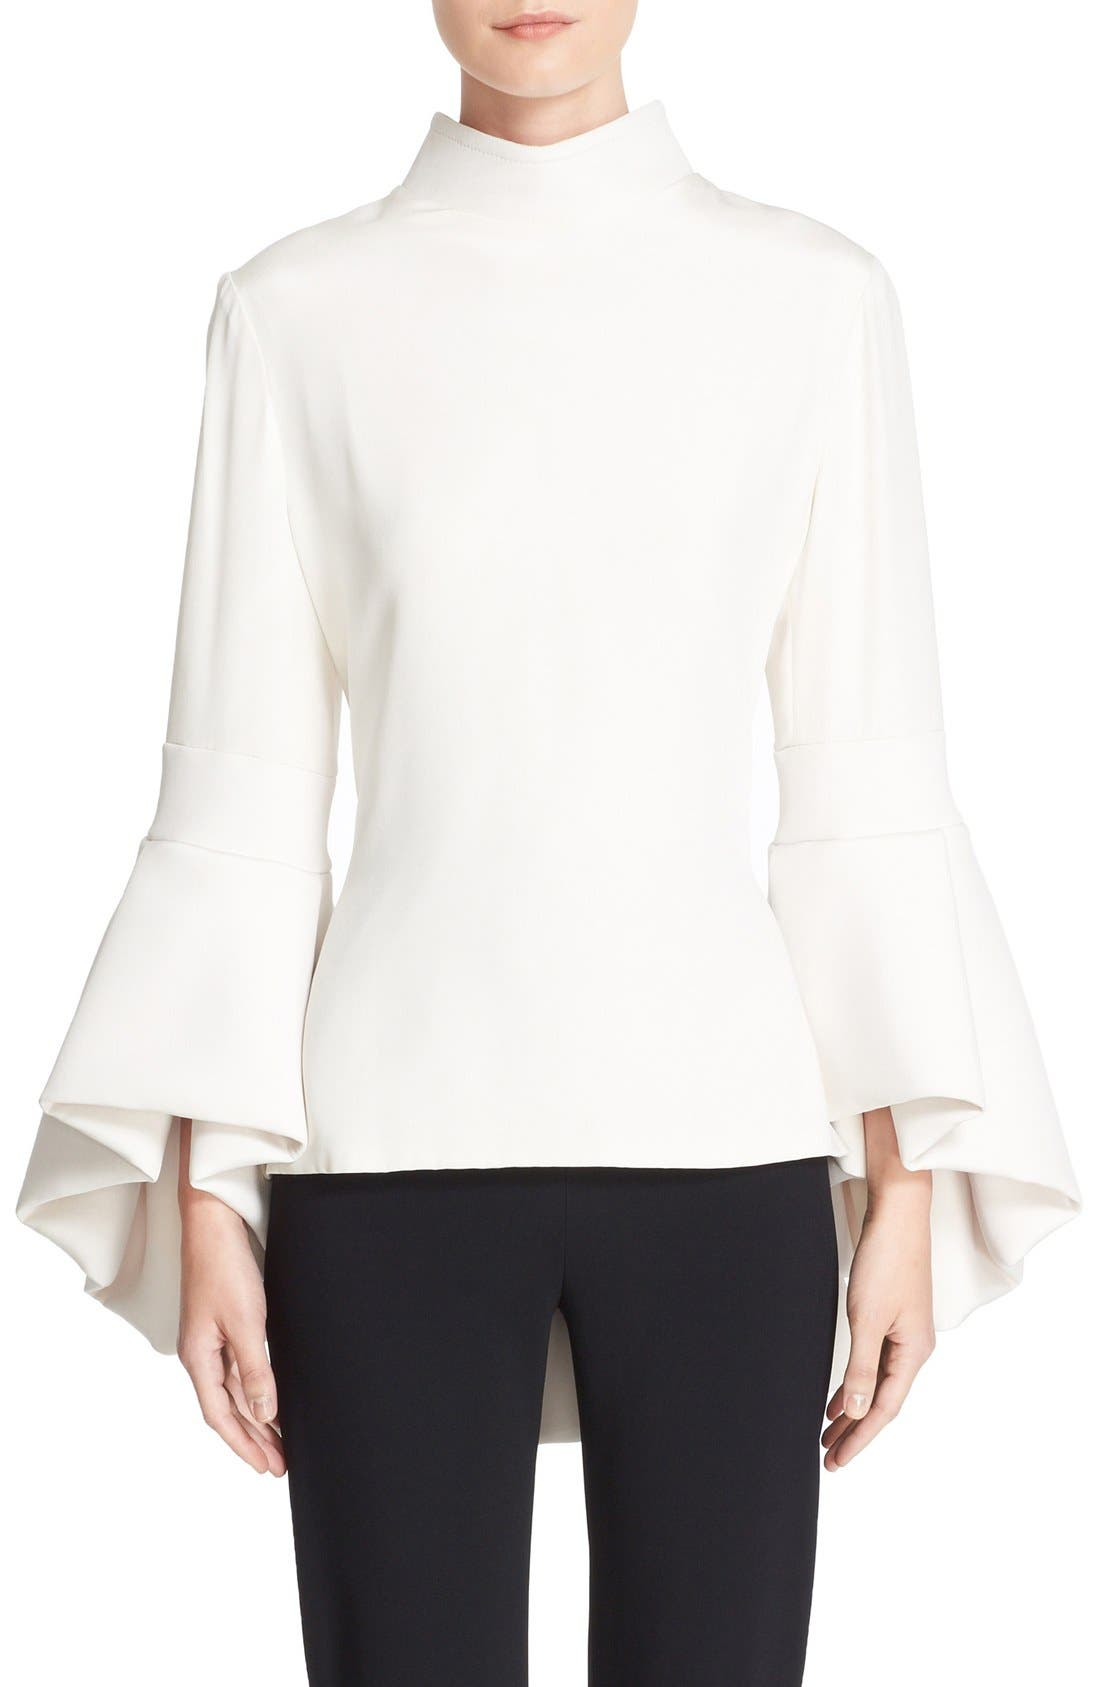 Alternate Image 1 Selected - Brandon Maxwell Bell Sleeve Peplum Back Top